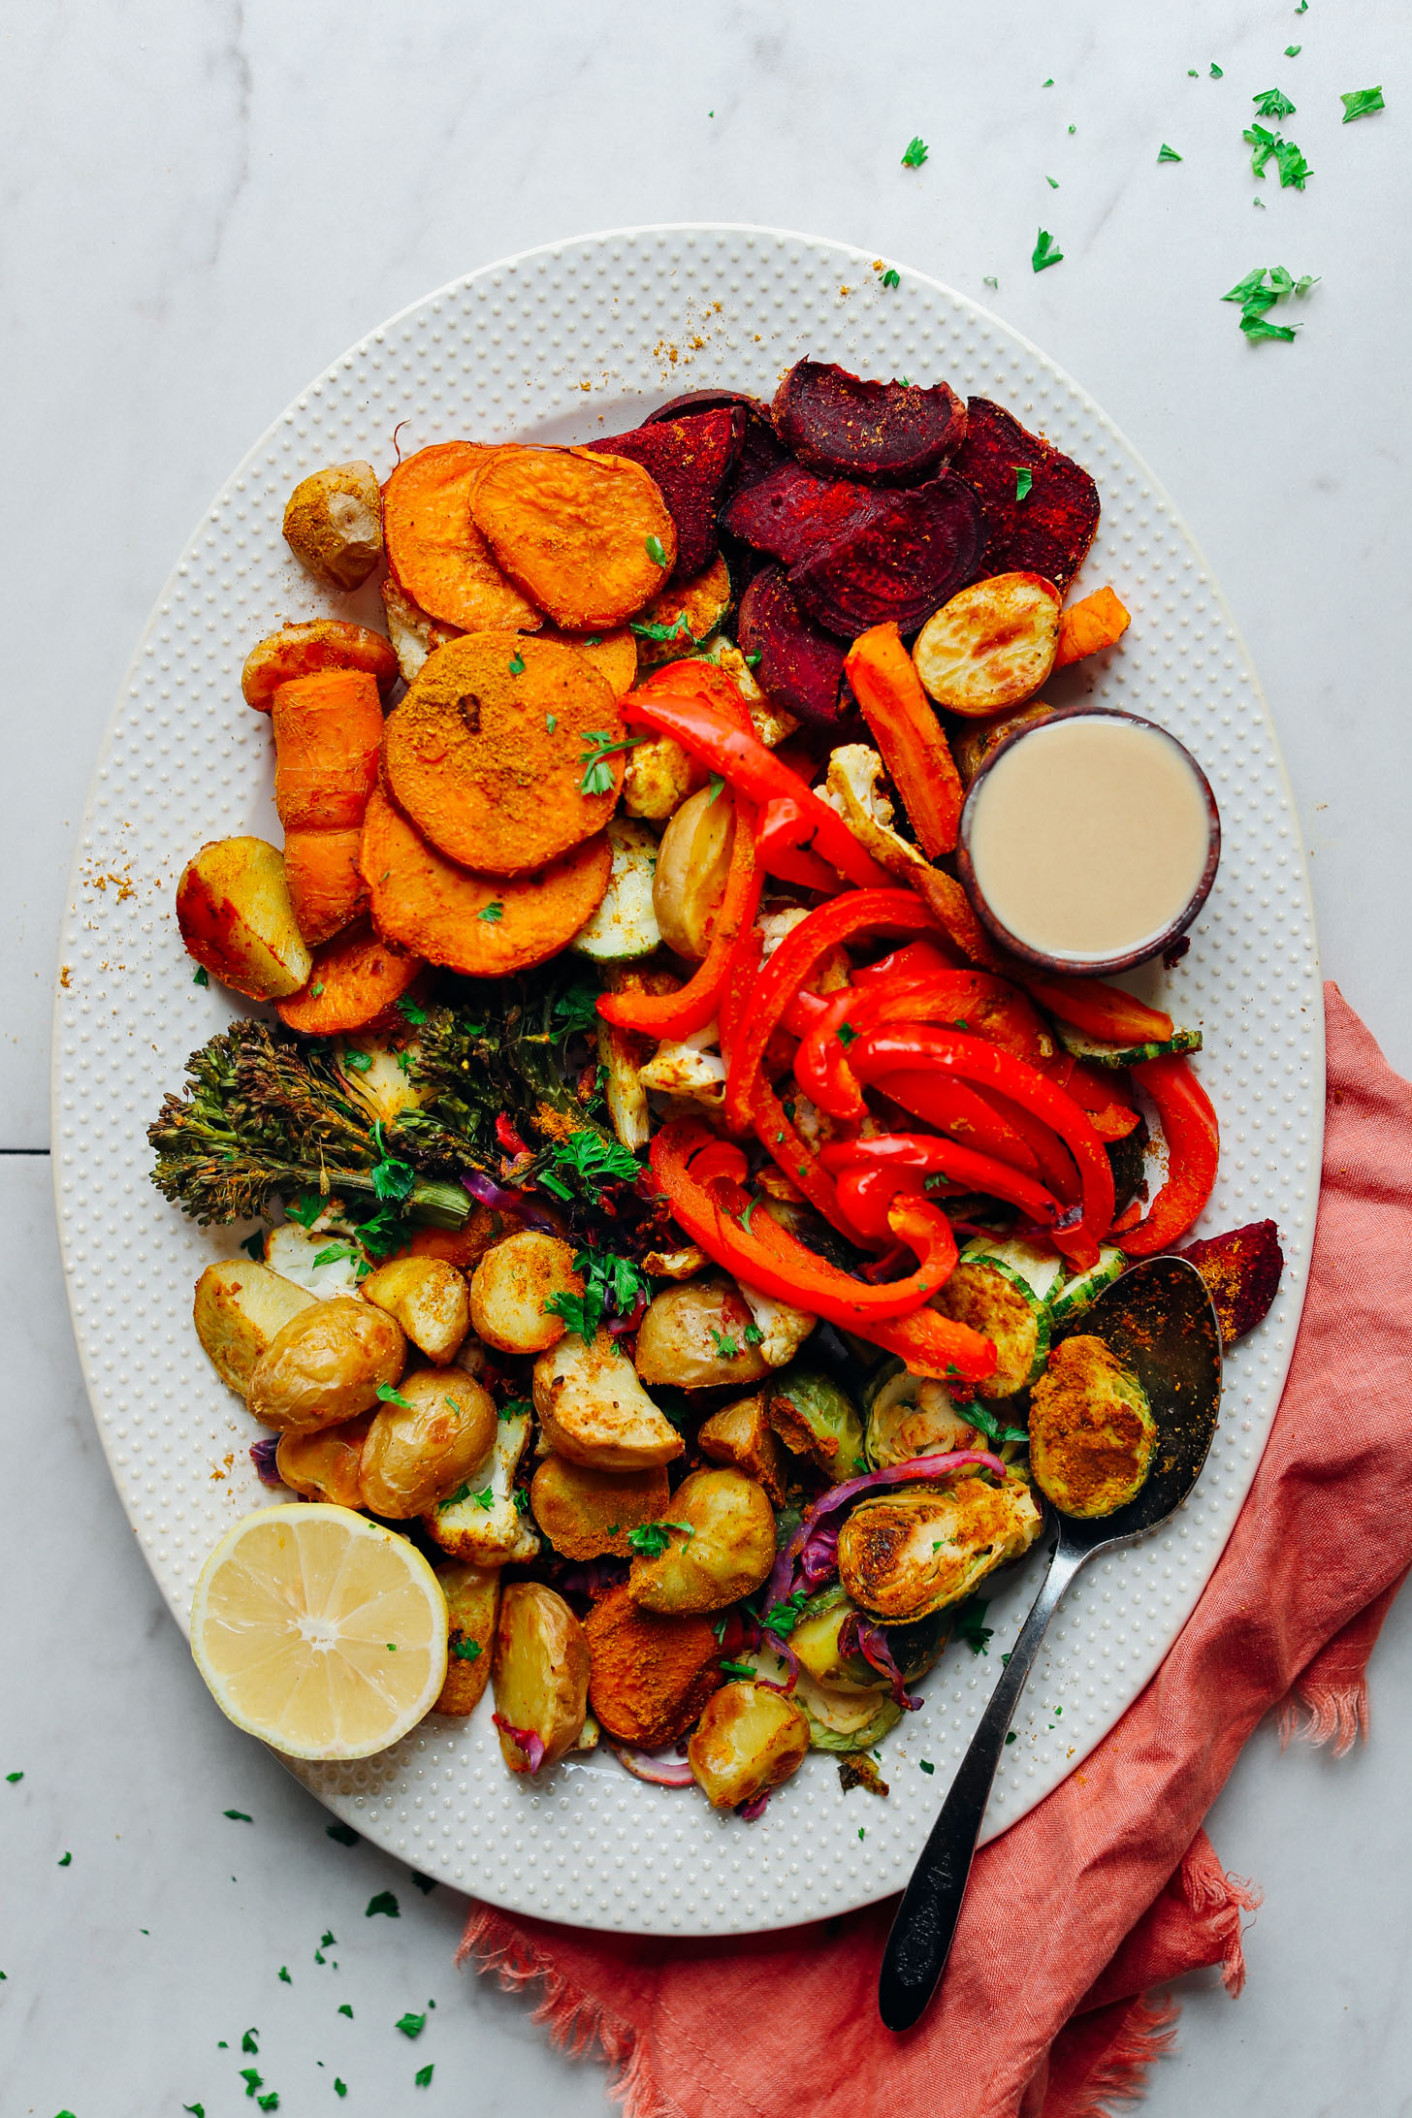 Oil Free Roasted Vegetables - Healthy Recipes Veggies